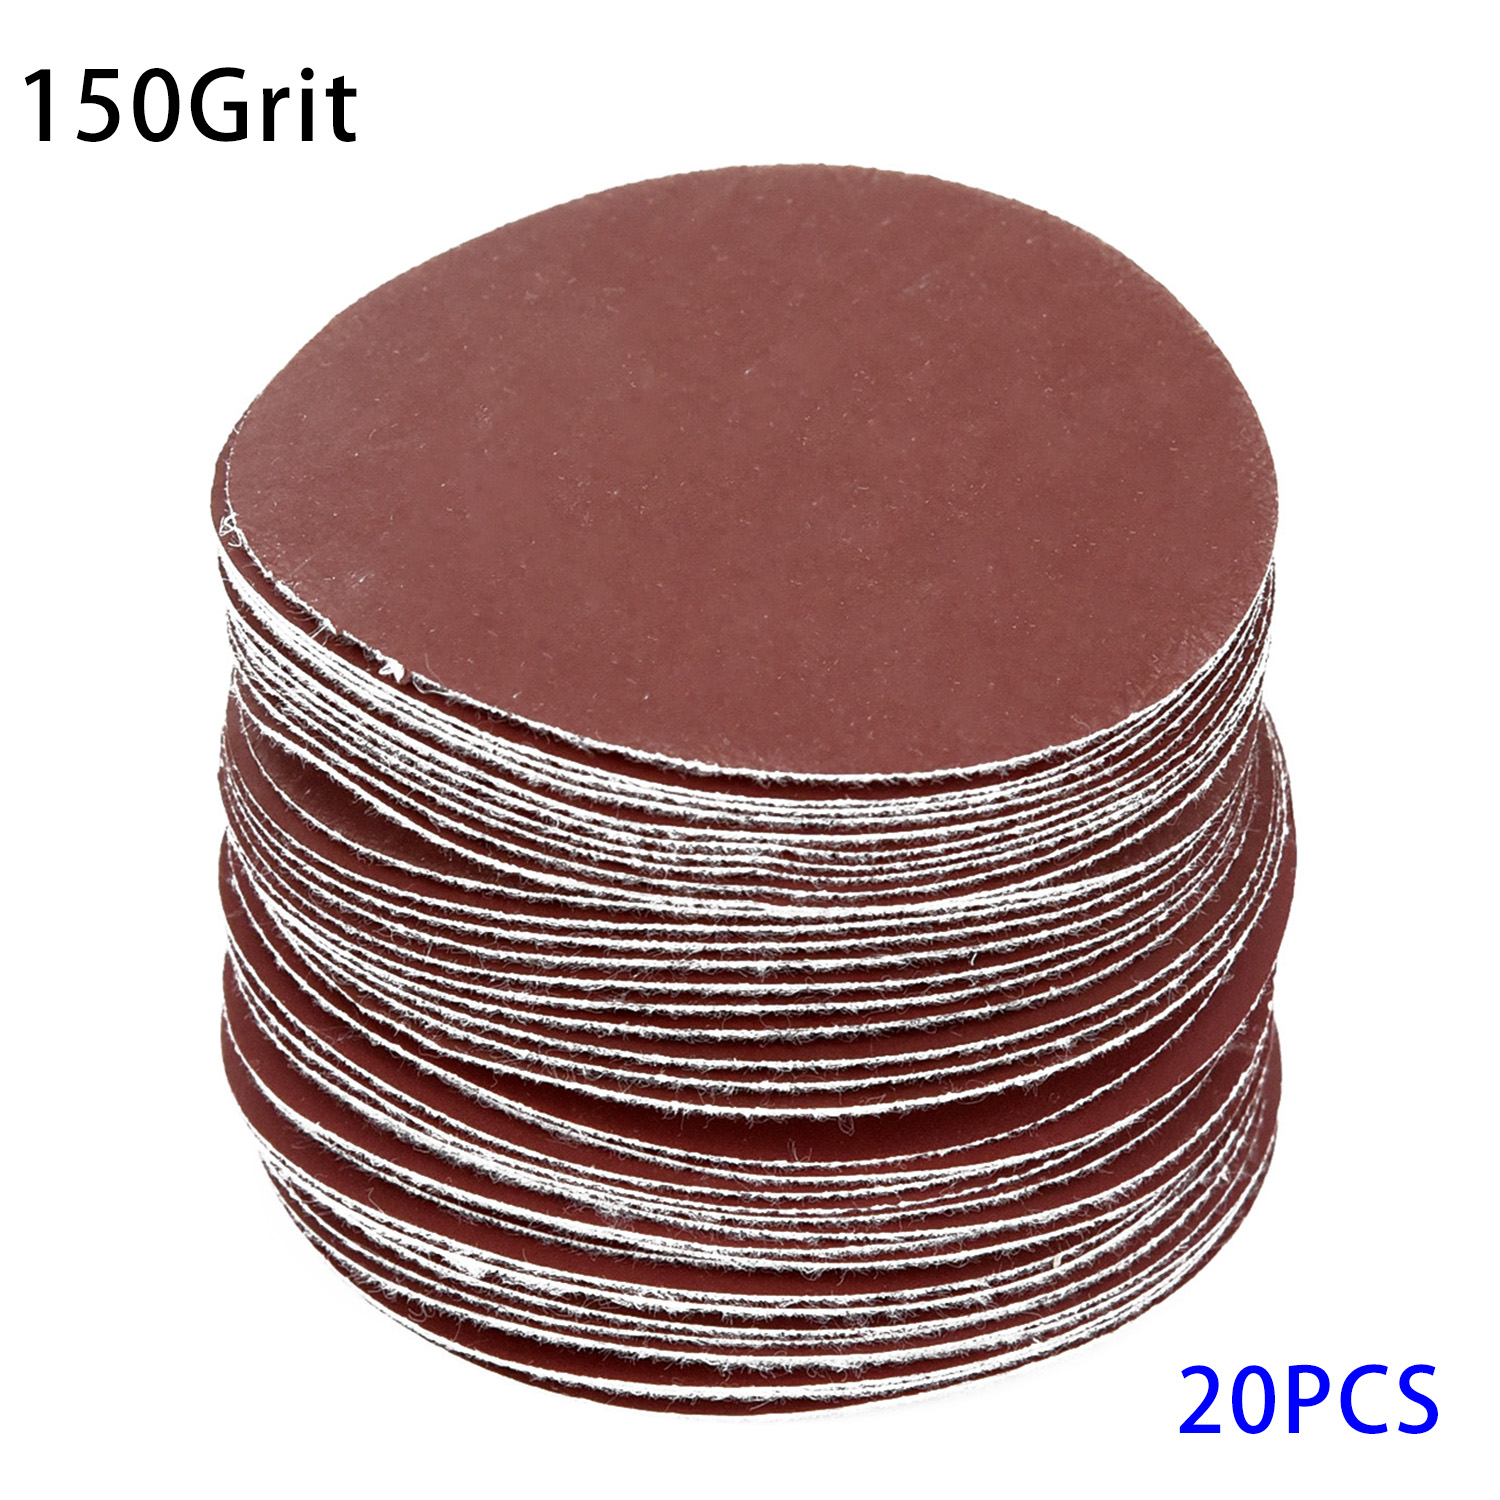 20pcs 75mm 3'' In. 40-3000Grit Sander Discs Sandpapers Sanding Polishing Pads